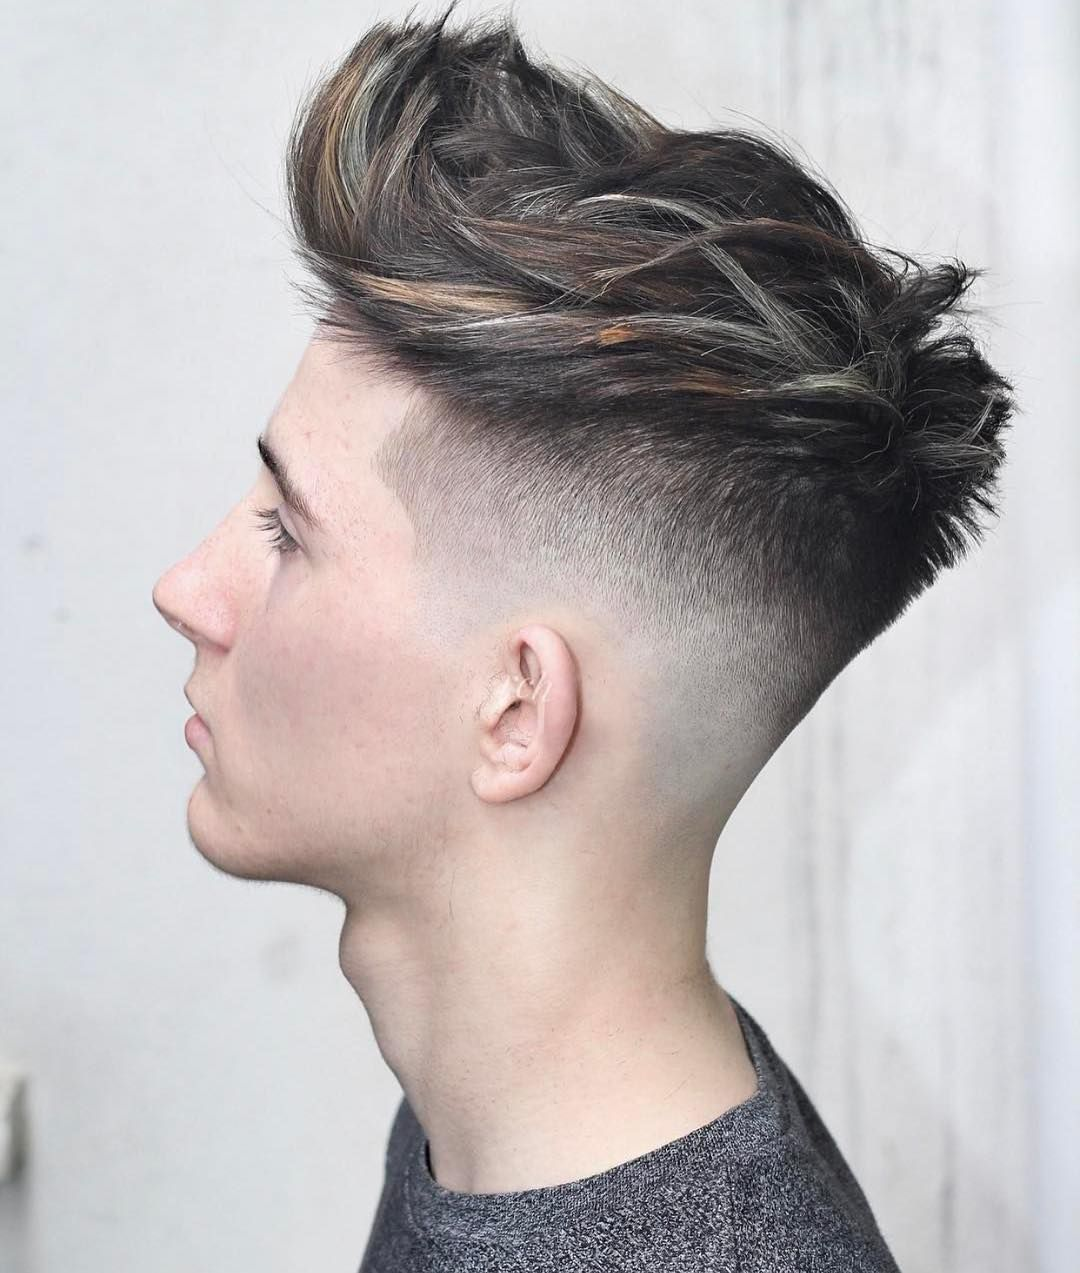 Men hairstyles hair ideas pinterest men hairstyles hair style